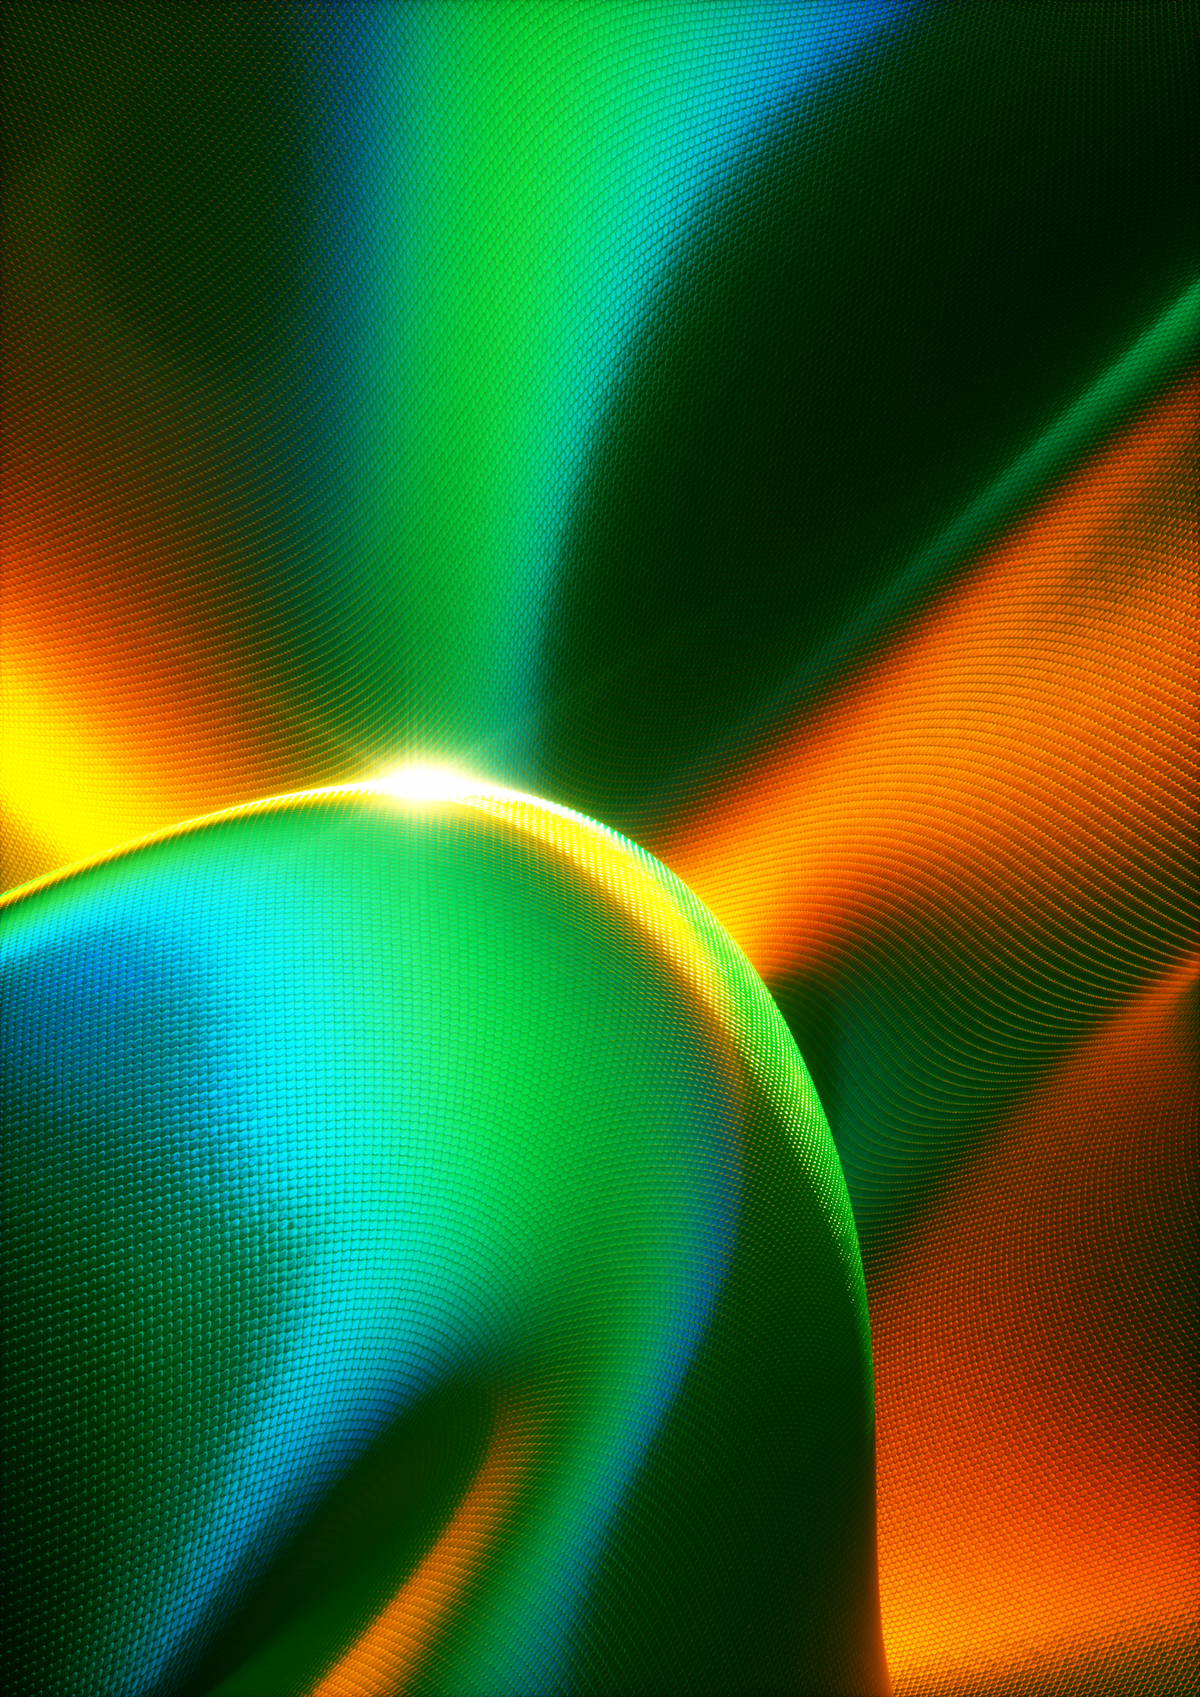 Interference of Light 1 0 on Behance